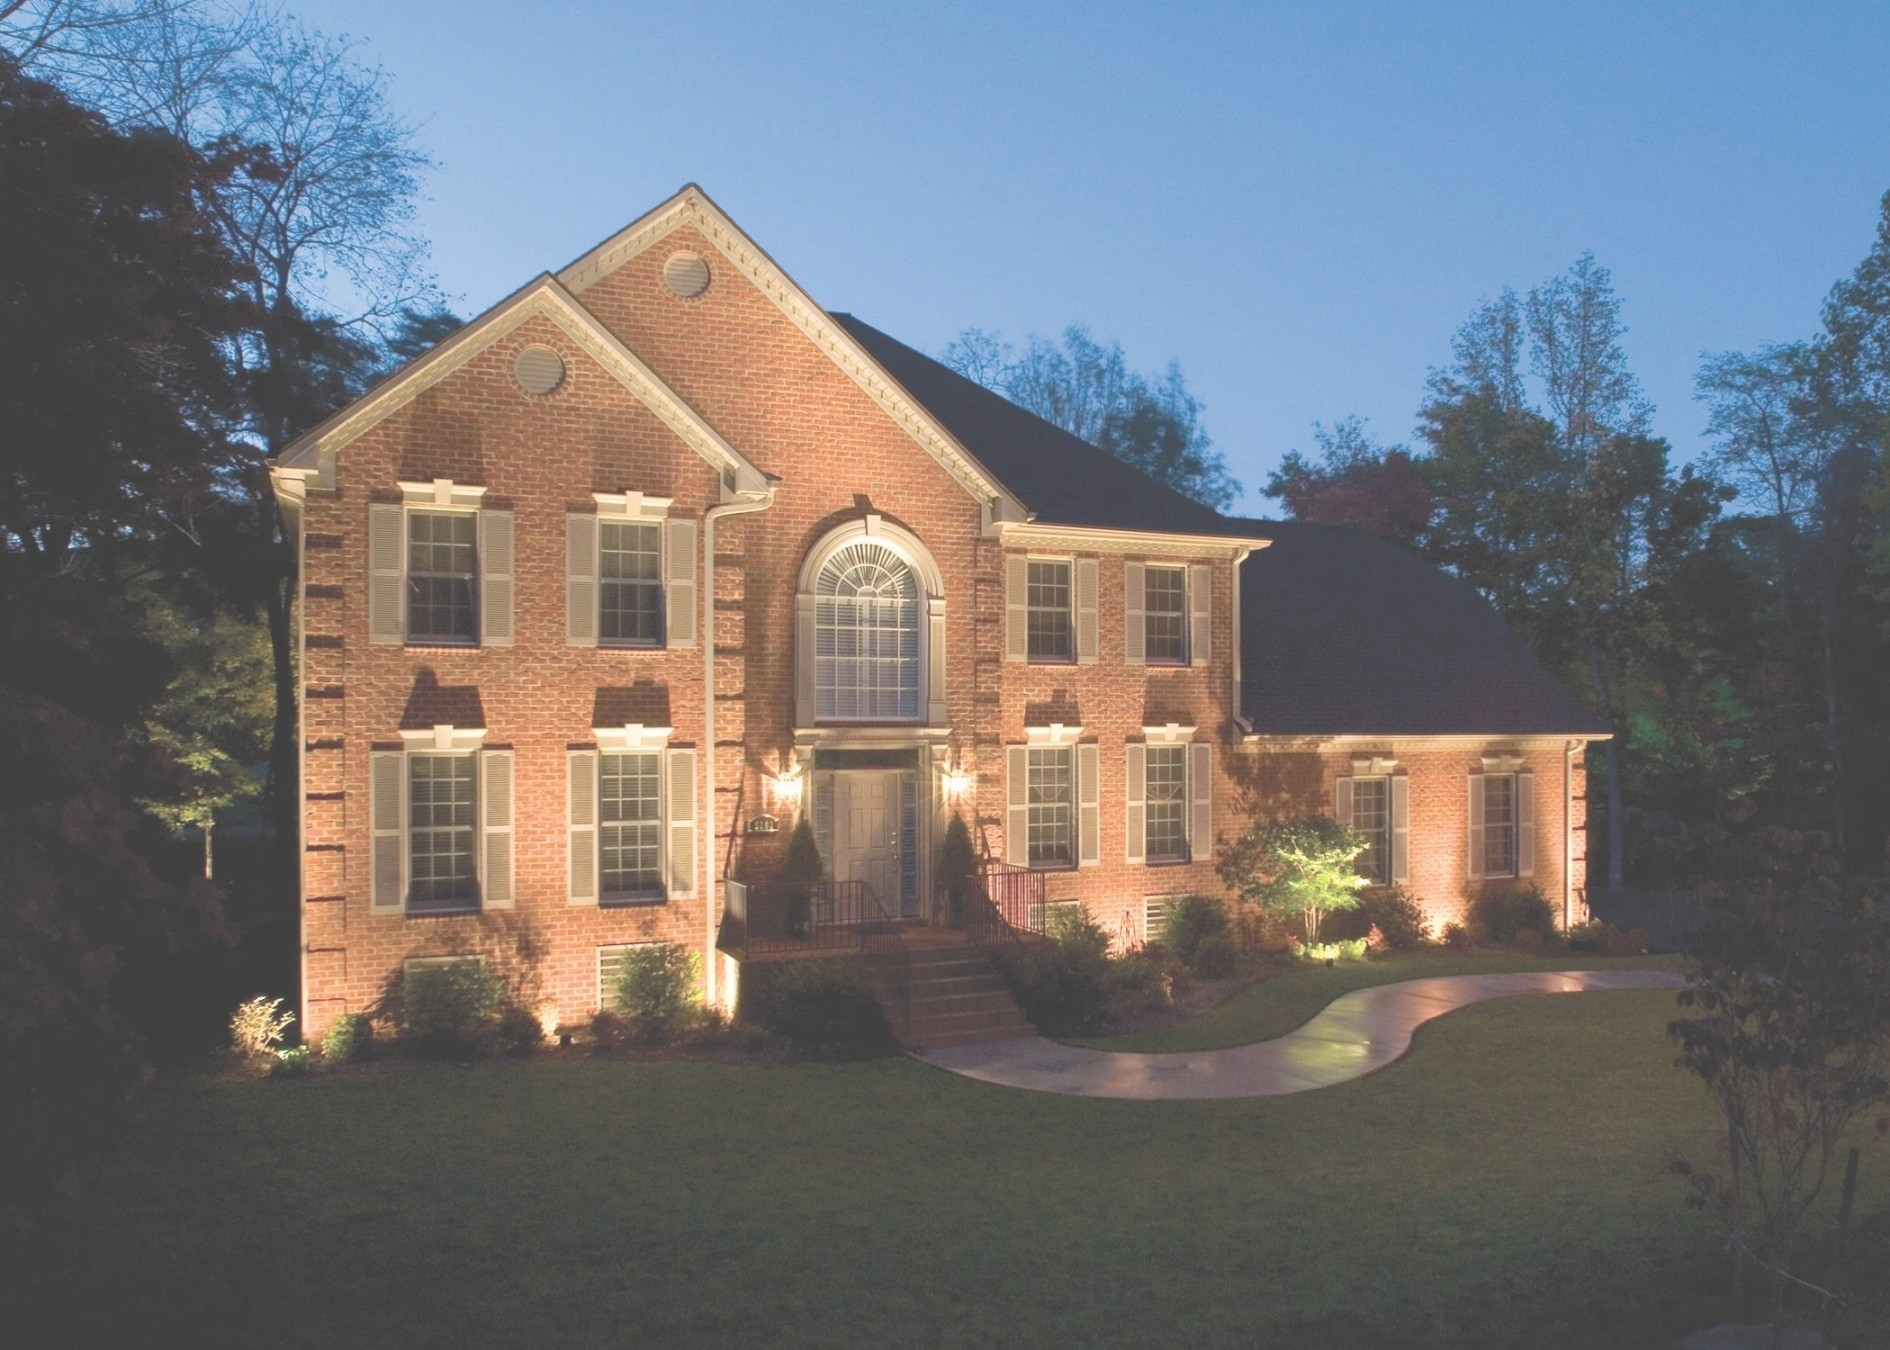 6 Reasons For Outdoor Lighting | Kg Landscape Management With With Regard To Outdoor Lanterns For House (Gallery 18 of 20)